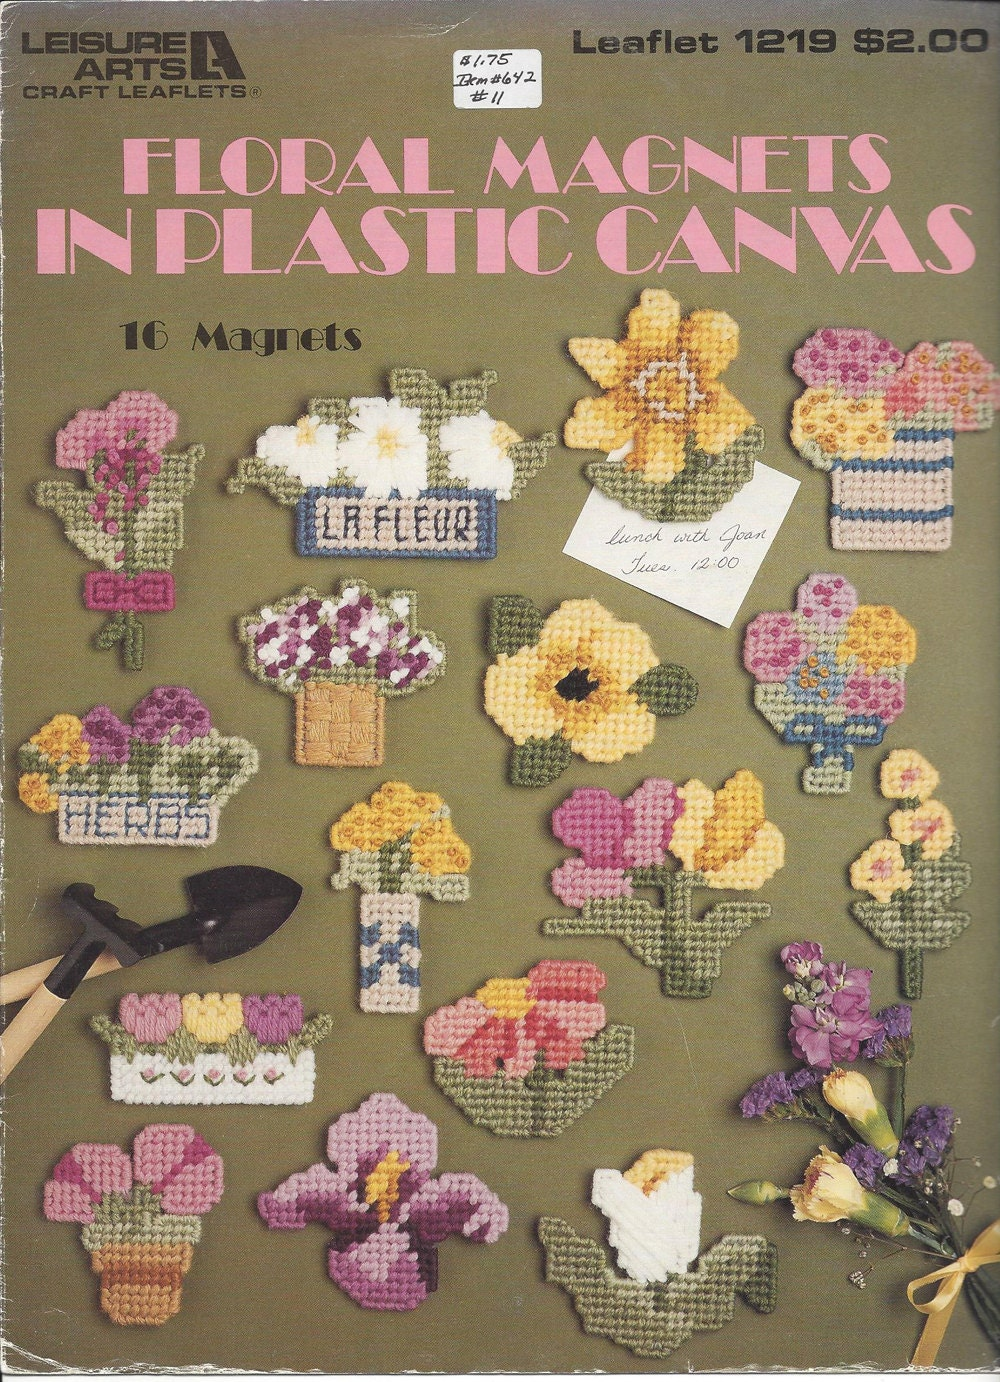 plastic canvas pattern floral magnets leisure arts 1219